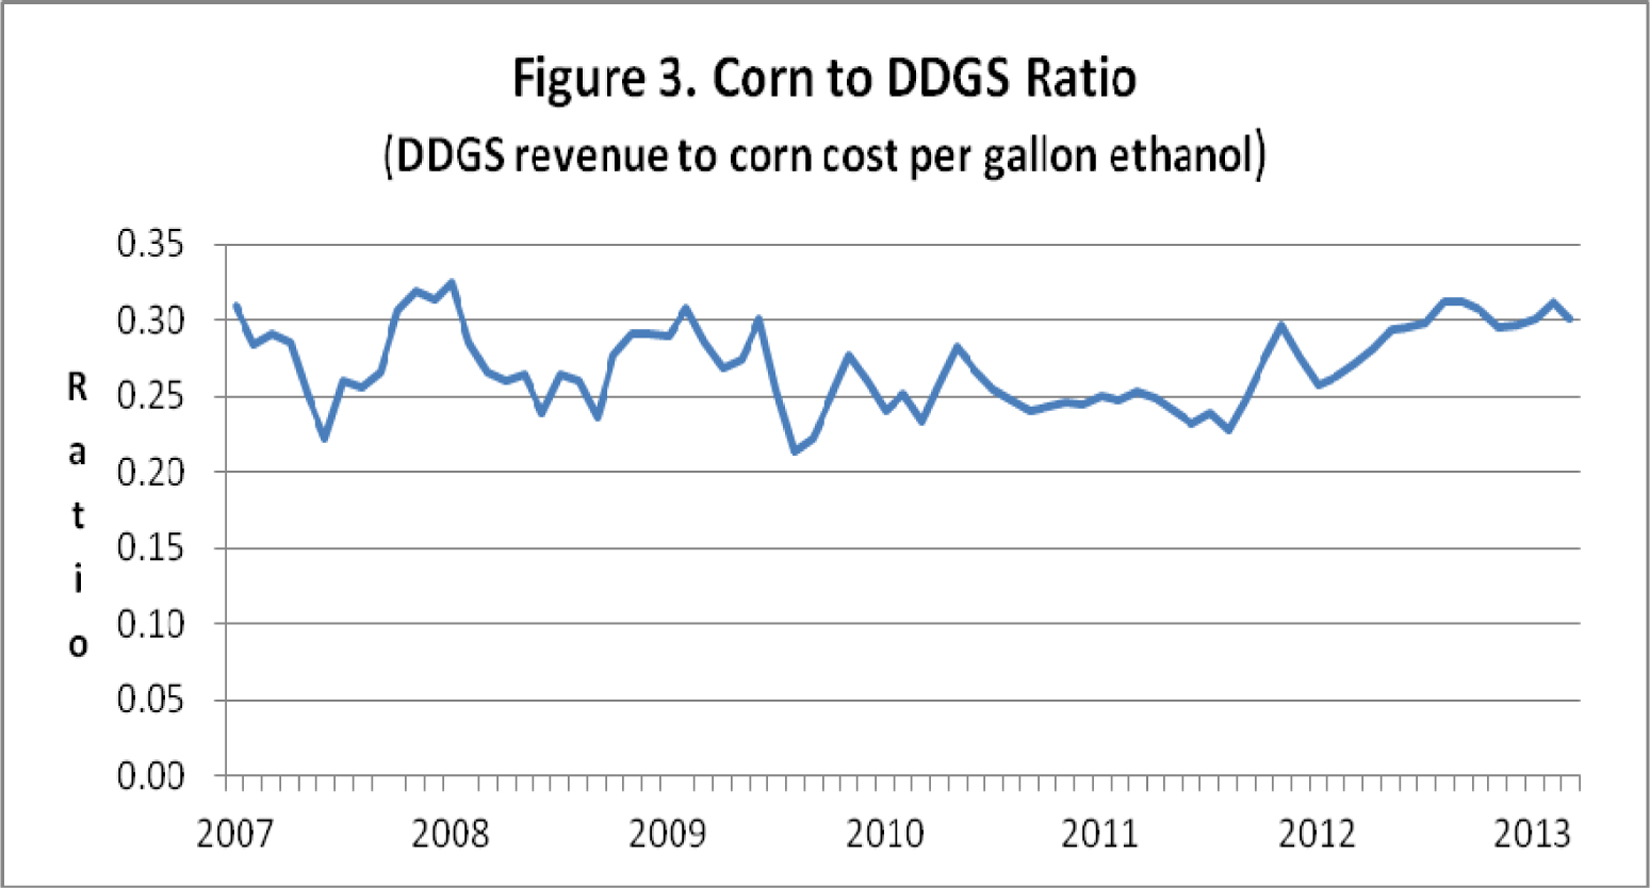 Corn to DDGS ratio